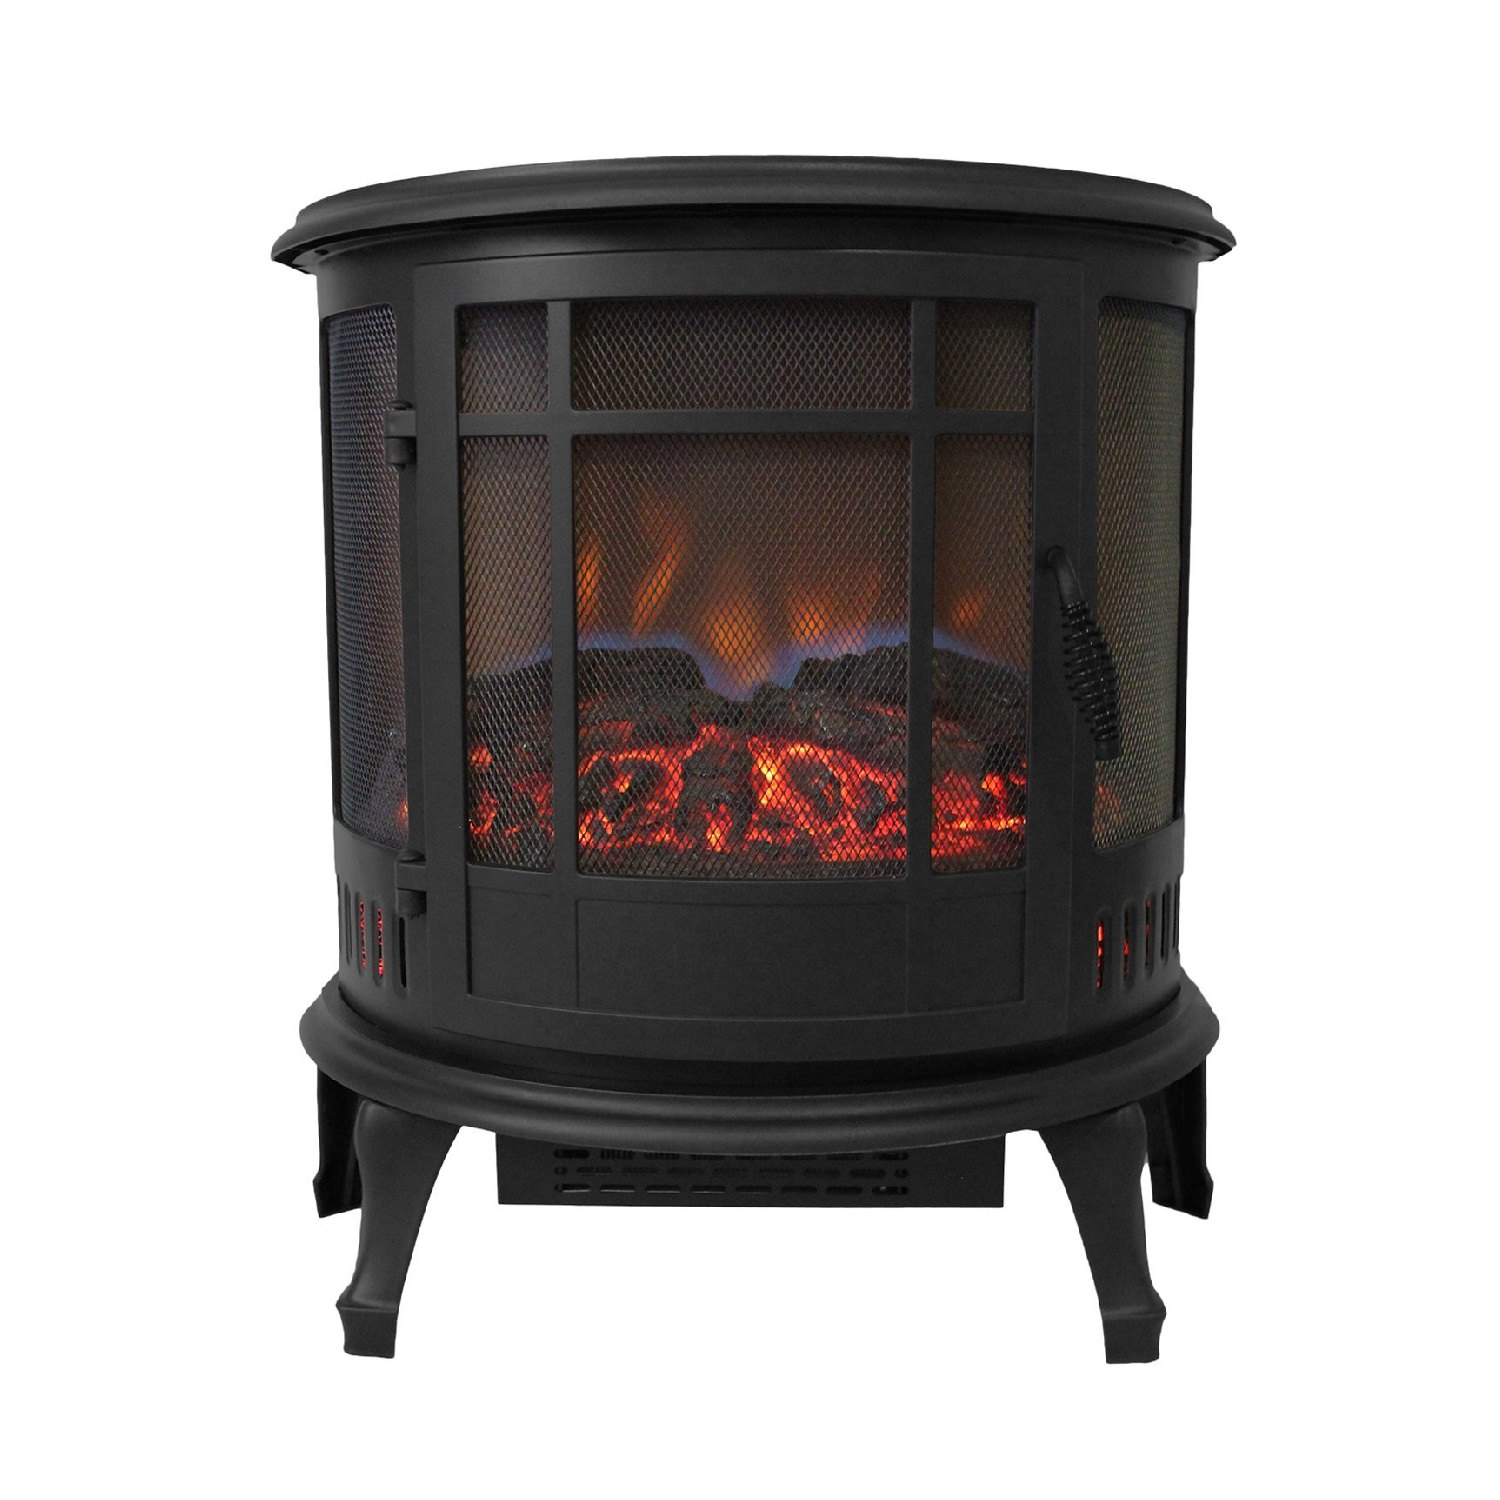 Comfort Glow Claremont Electric Stove, Black